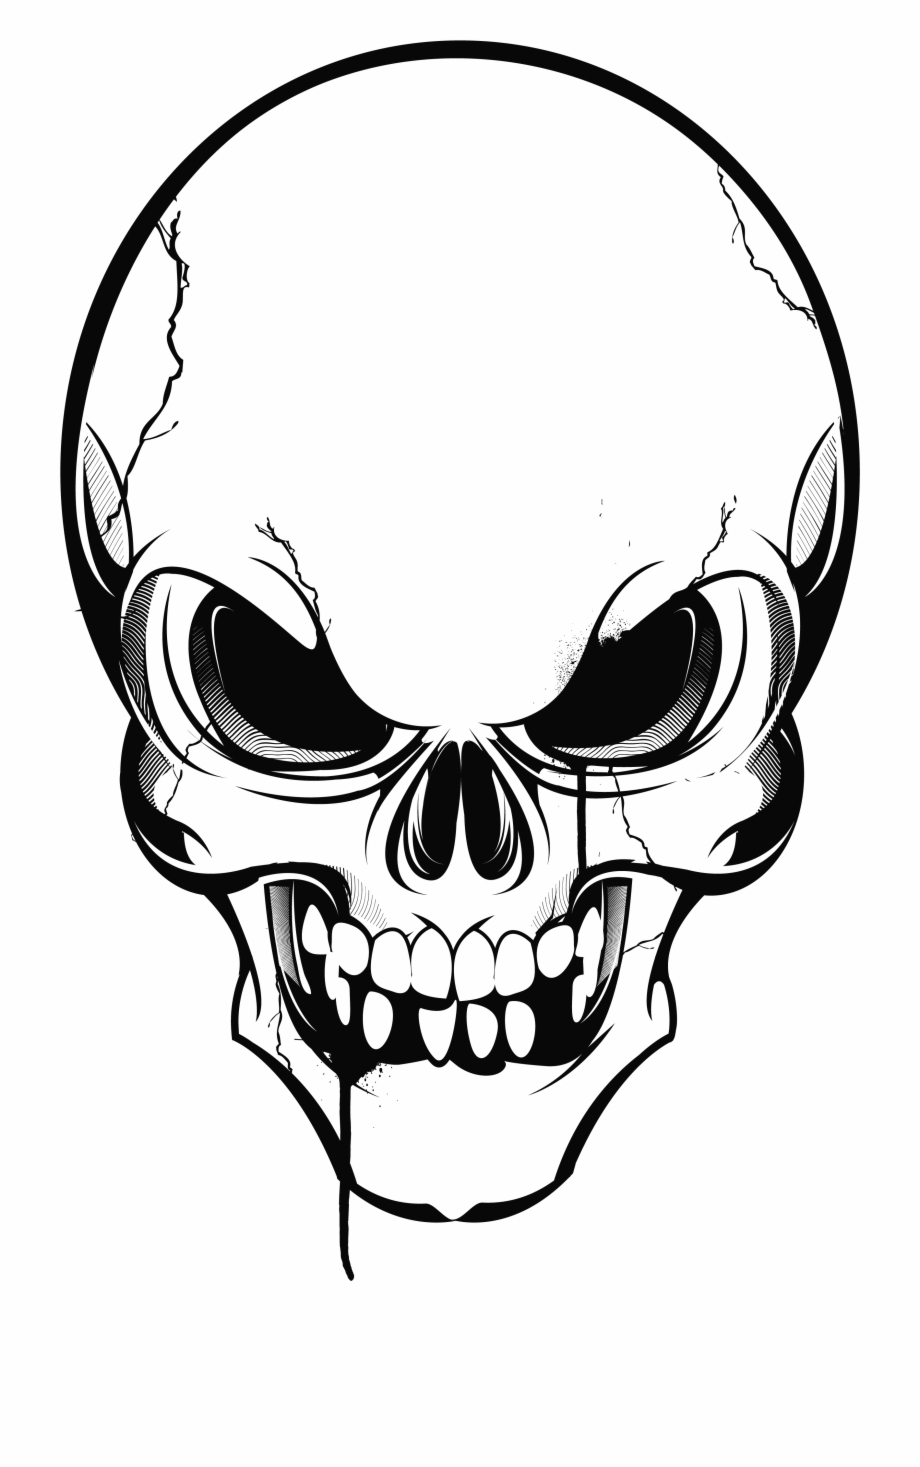 Skeleton clipart angry. Us drawing skull transparent